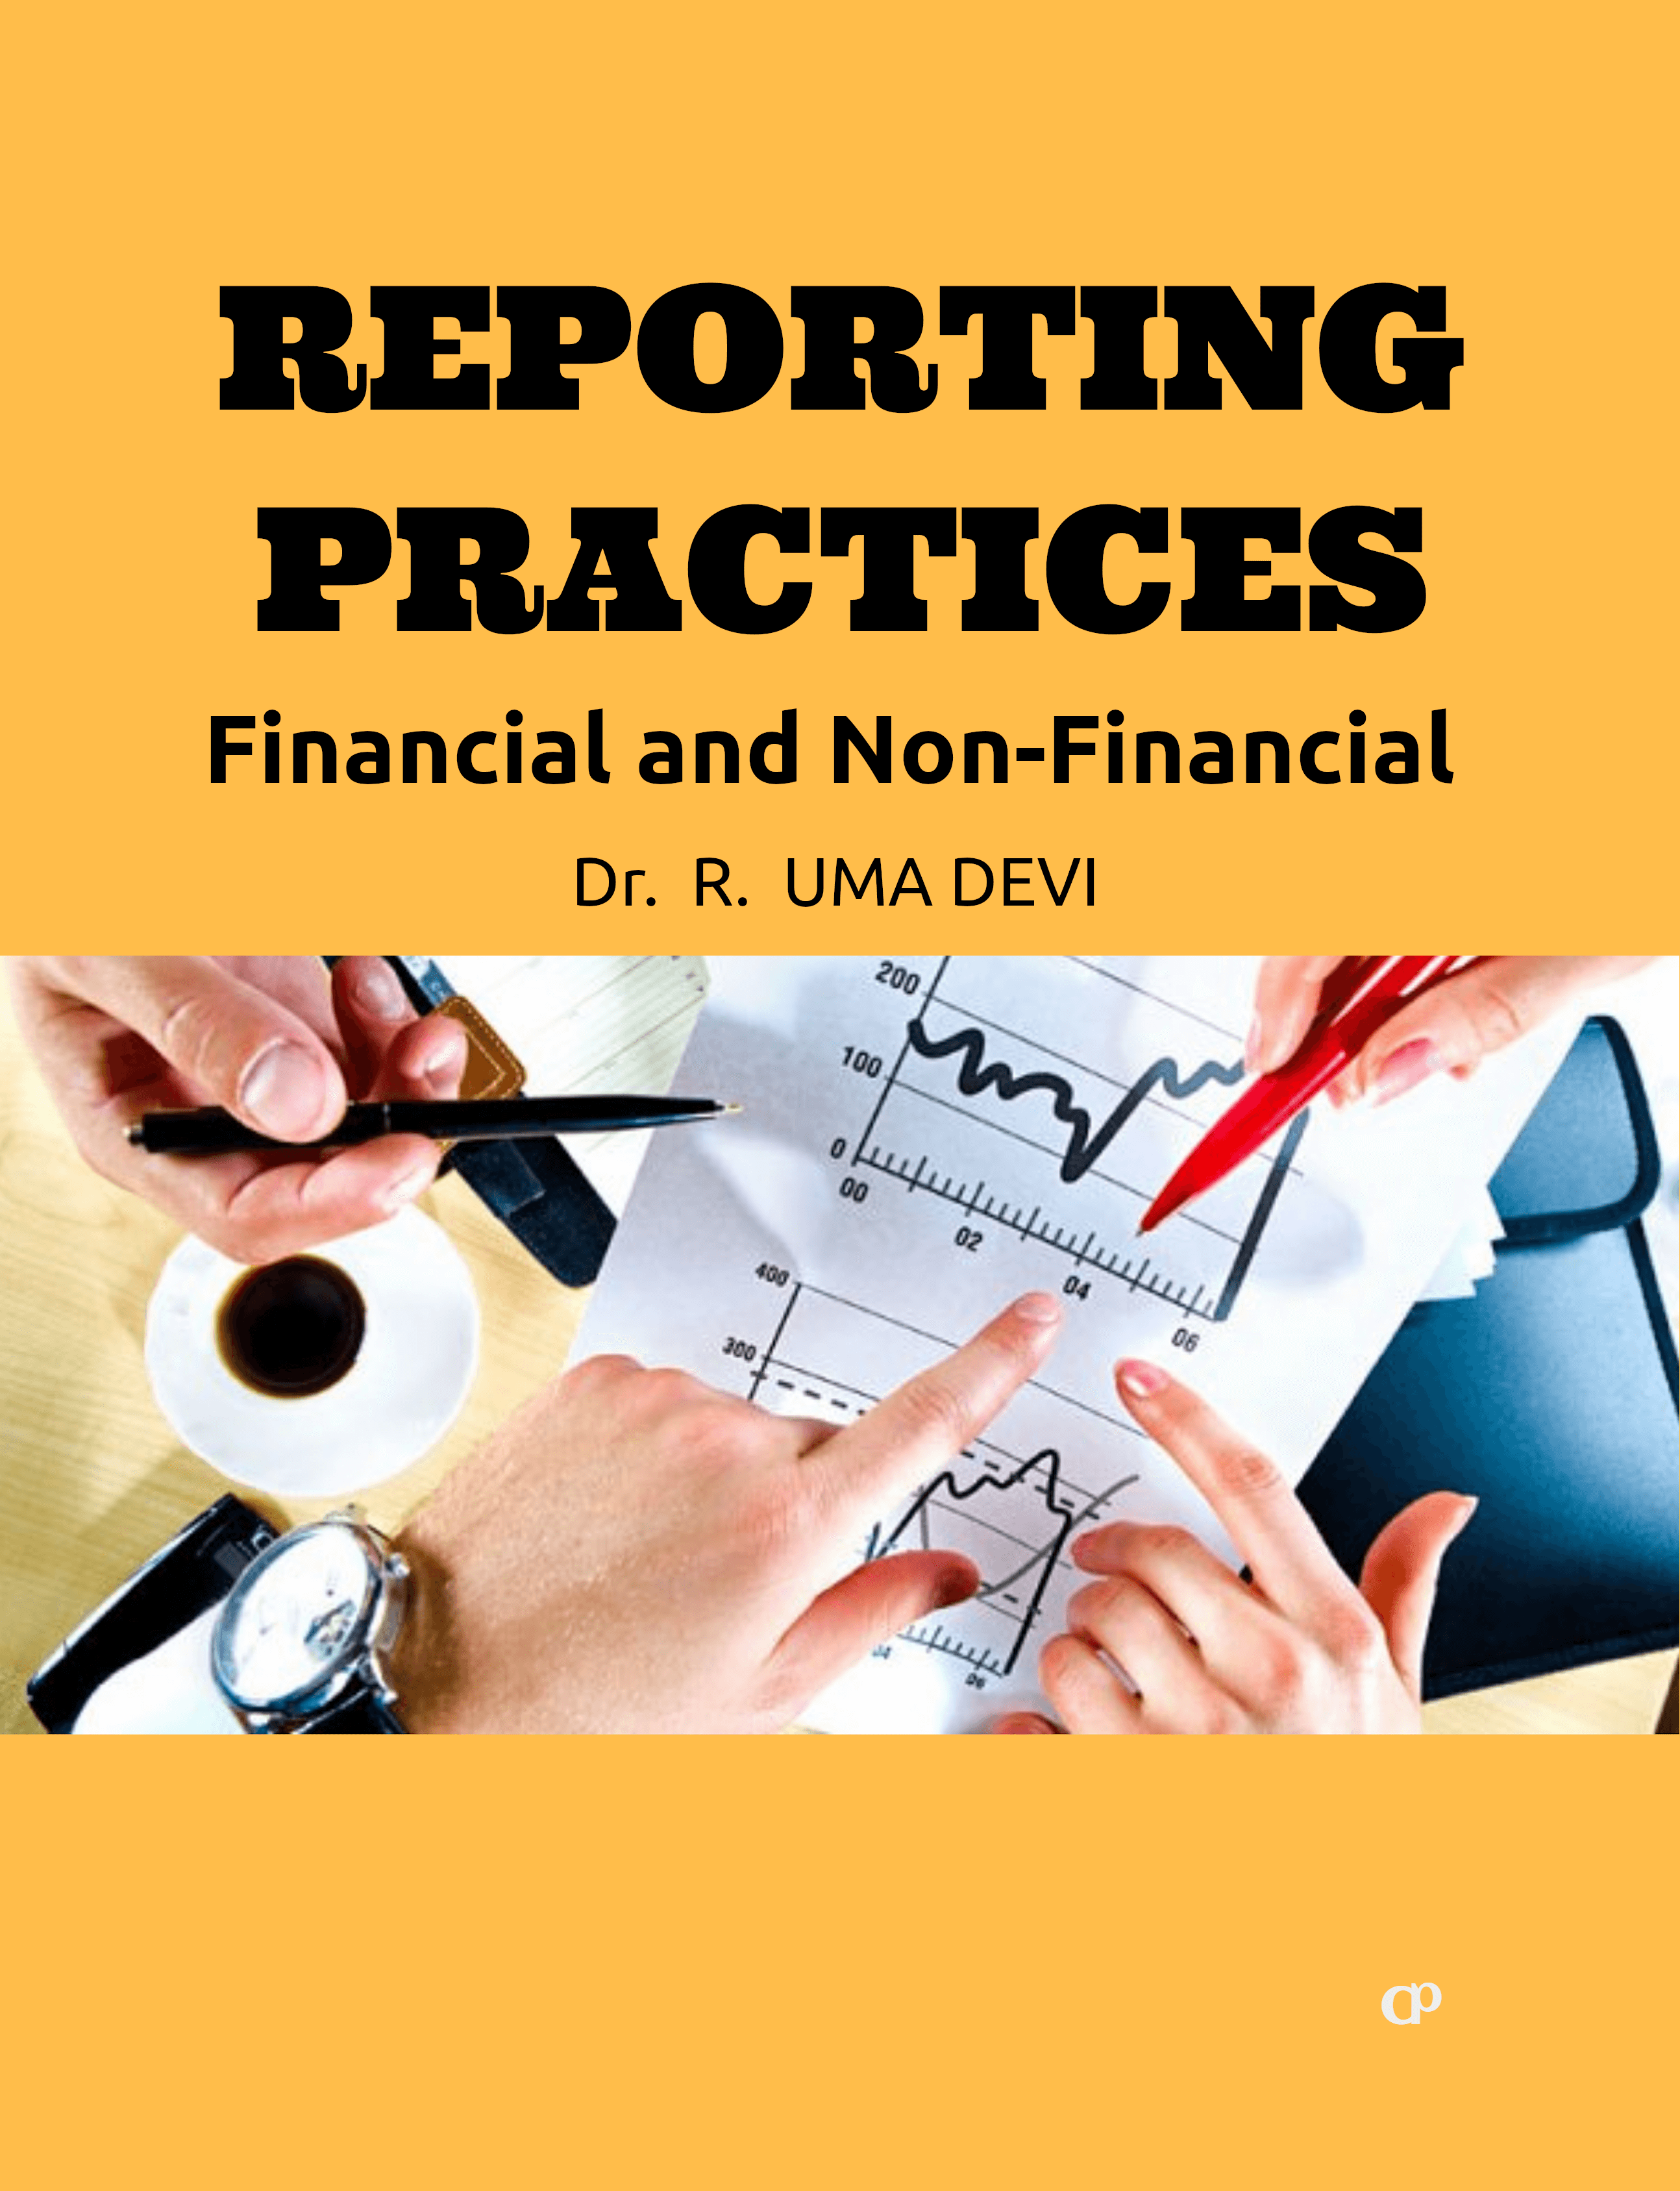 Reporting Practices Financial And Non Financial by CSMFL Publications